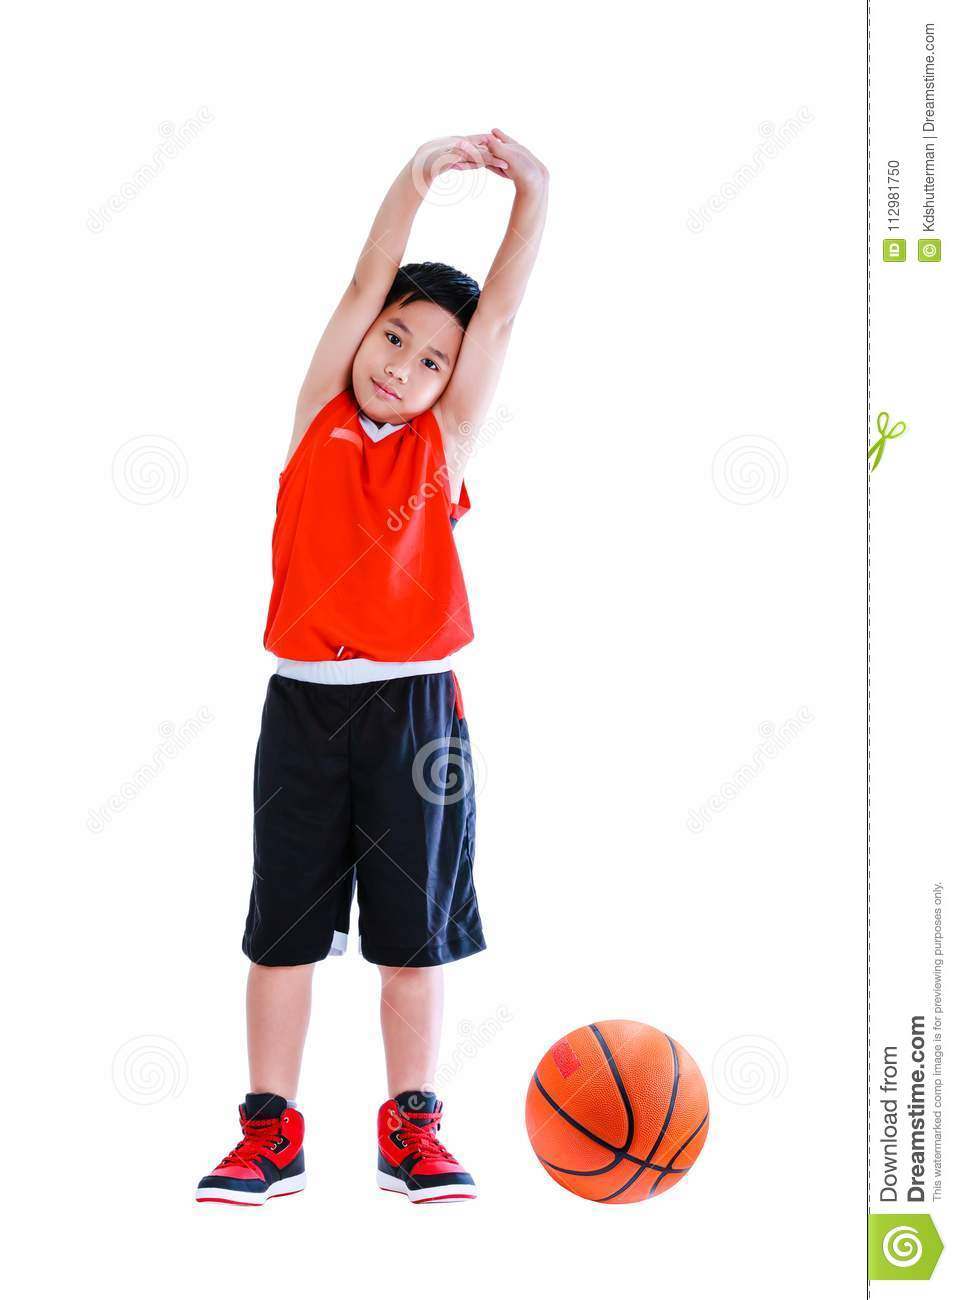 Asian basketball player doing muscle stretching. Isolated on white background.